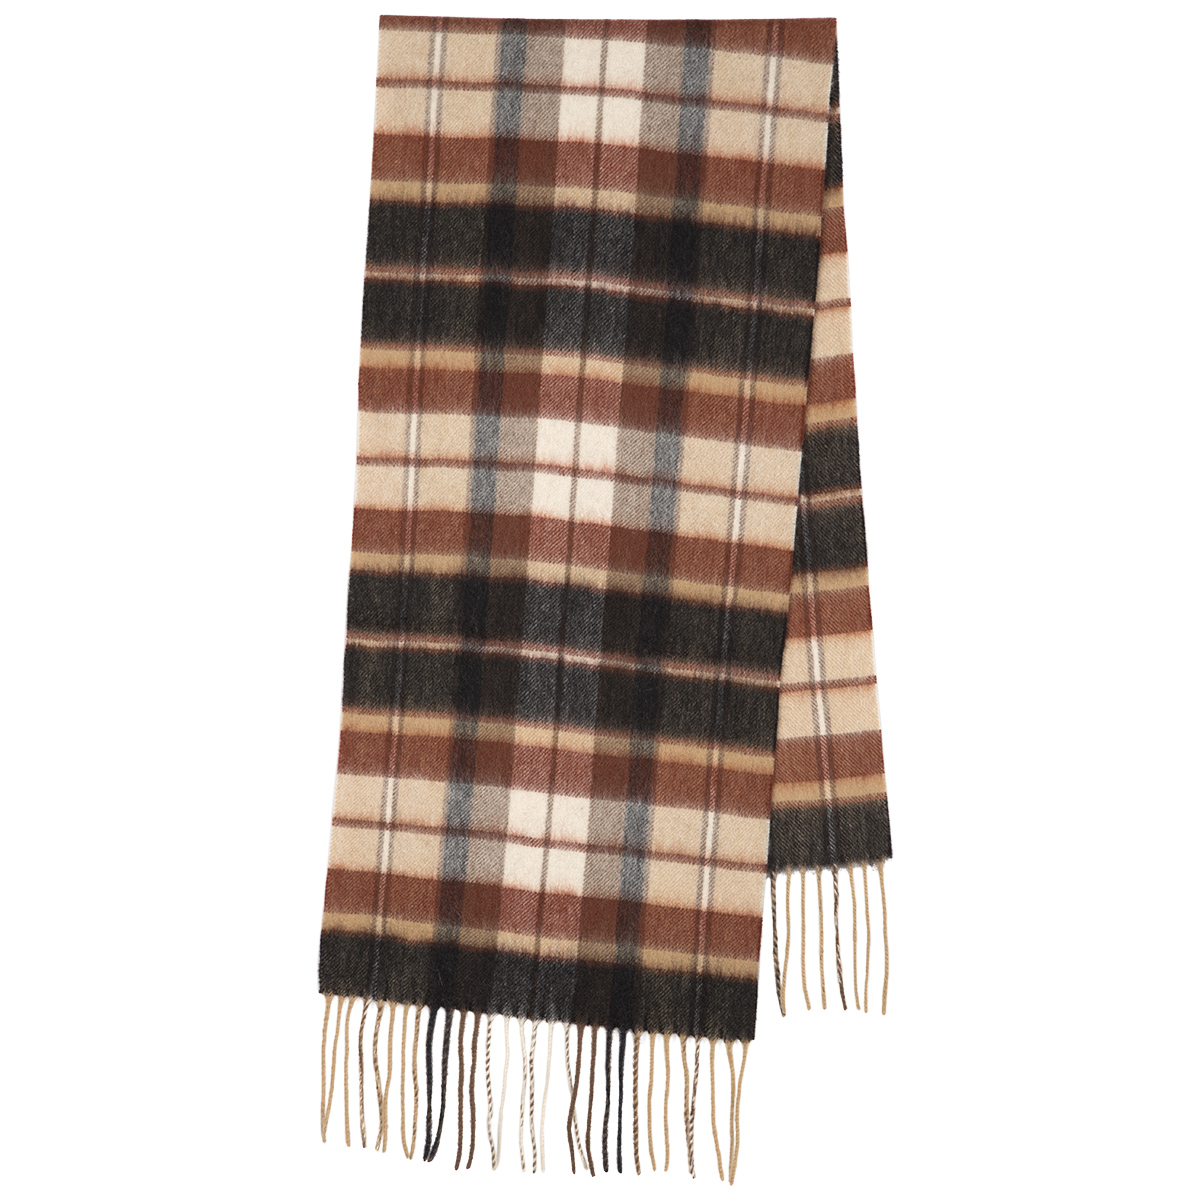 Mixed Cashmere Woolen Scarf